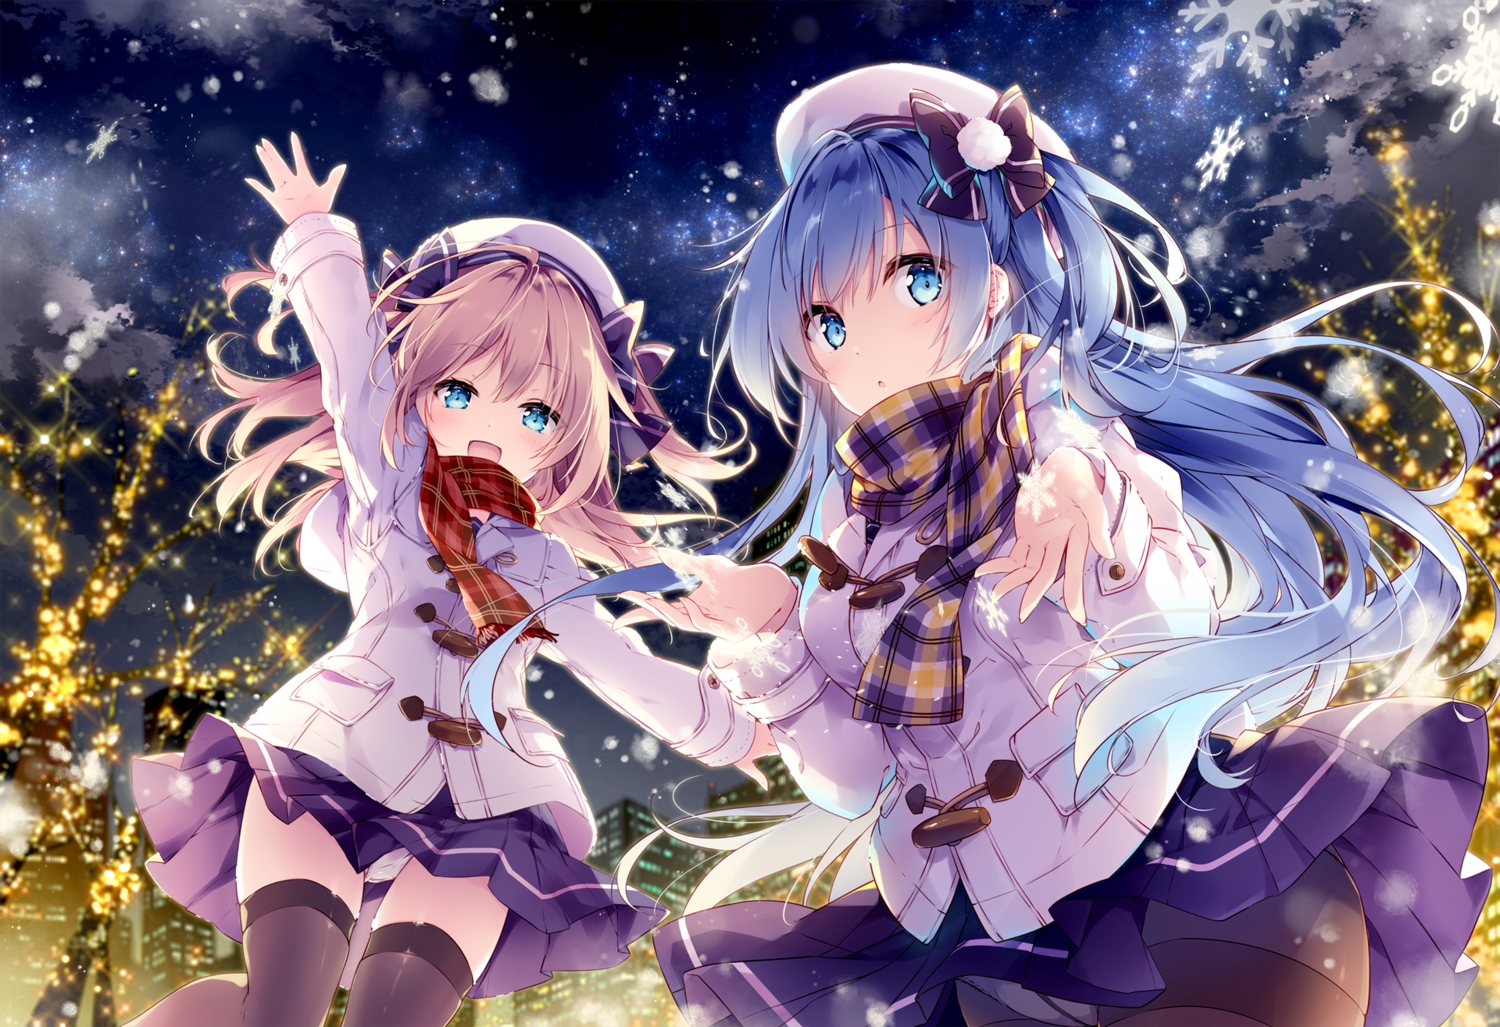 2girls aqua_eyes blonde_hair blue_hair bow building christmas city clouds emori_el emori_miku emori_miku_project hat hoodie long_hair mochizuki_shiina night panties pantyhose scarf seifuku skirt sky snow stars thighhighs tree twintails underwear